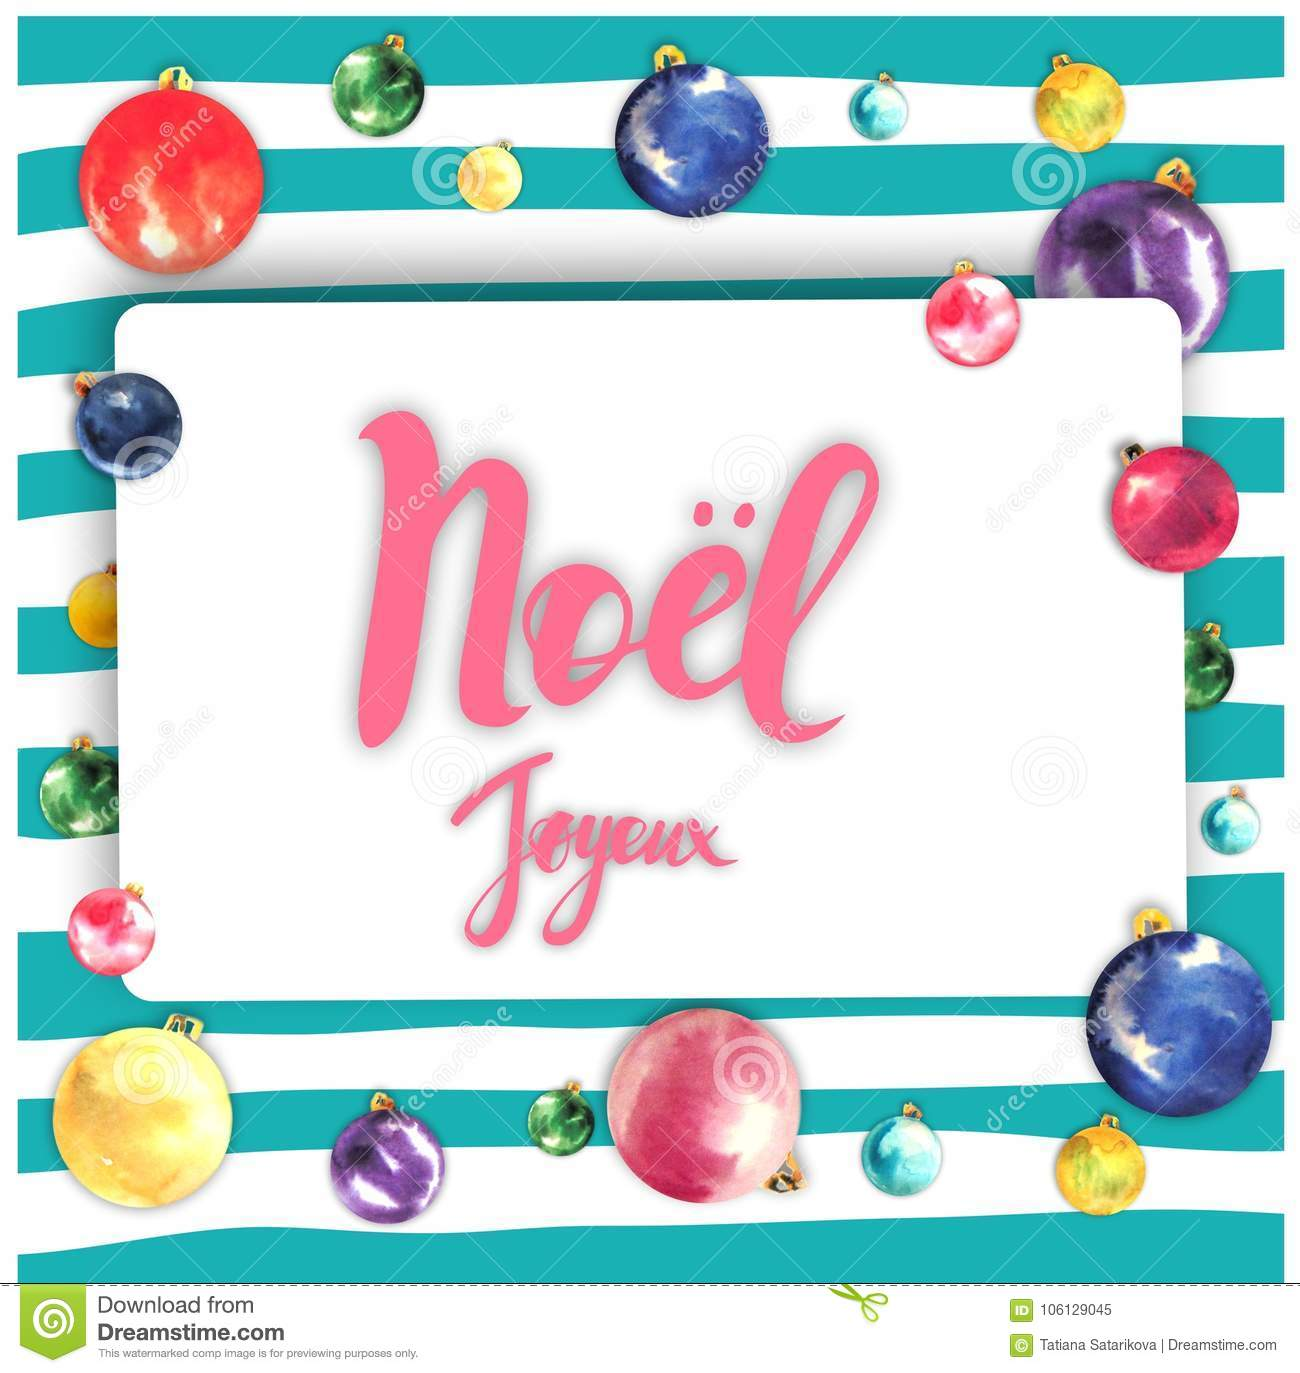 Merry Christmas Frame Card Design With Greetings In French Language